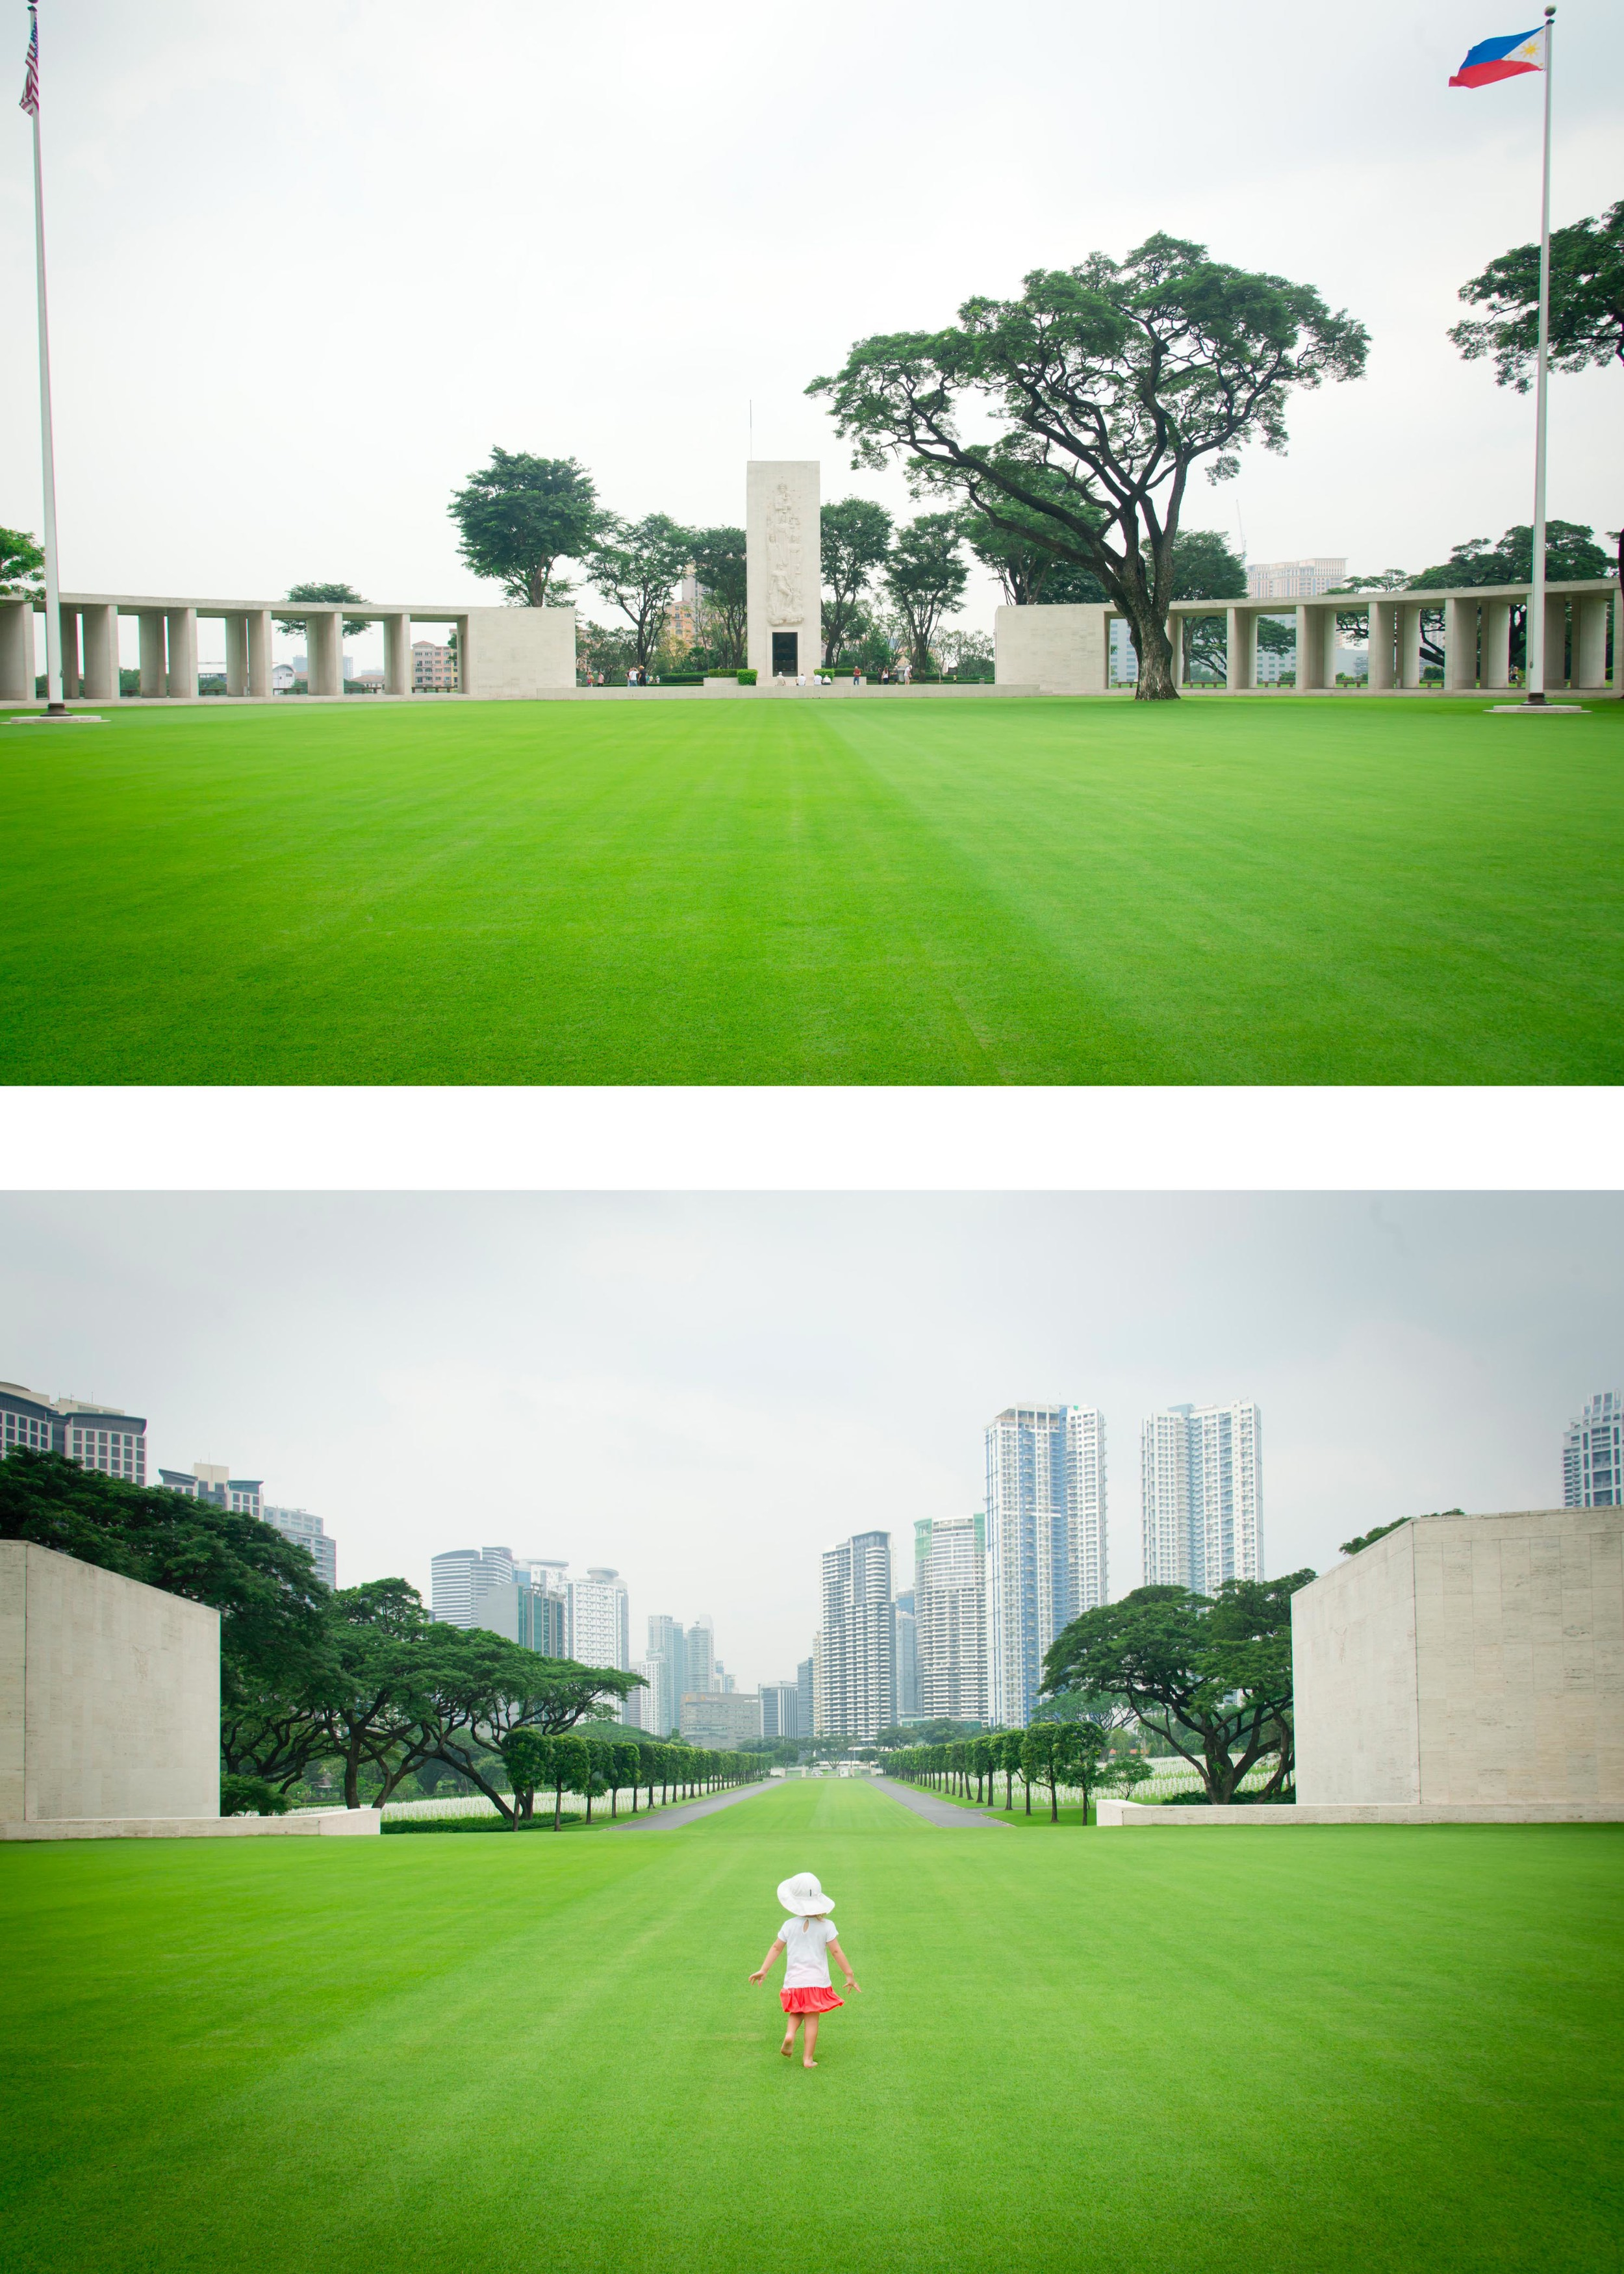 In case you were wondering how huge the memorial really is.